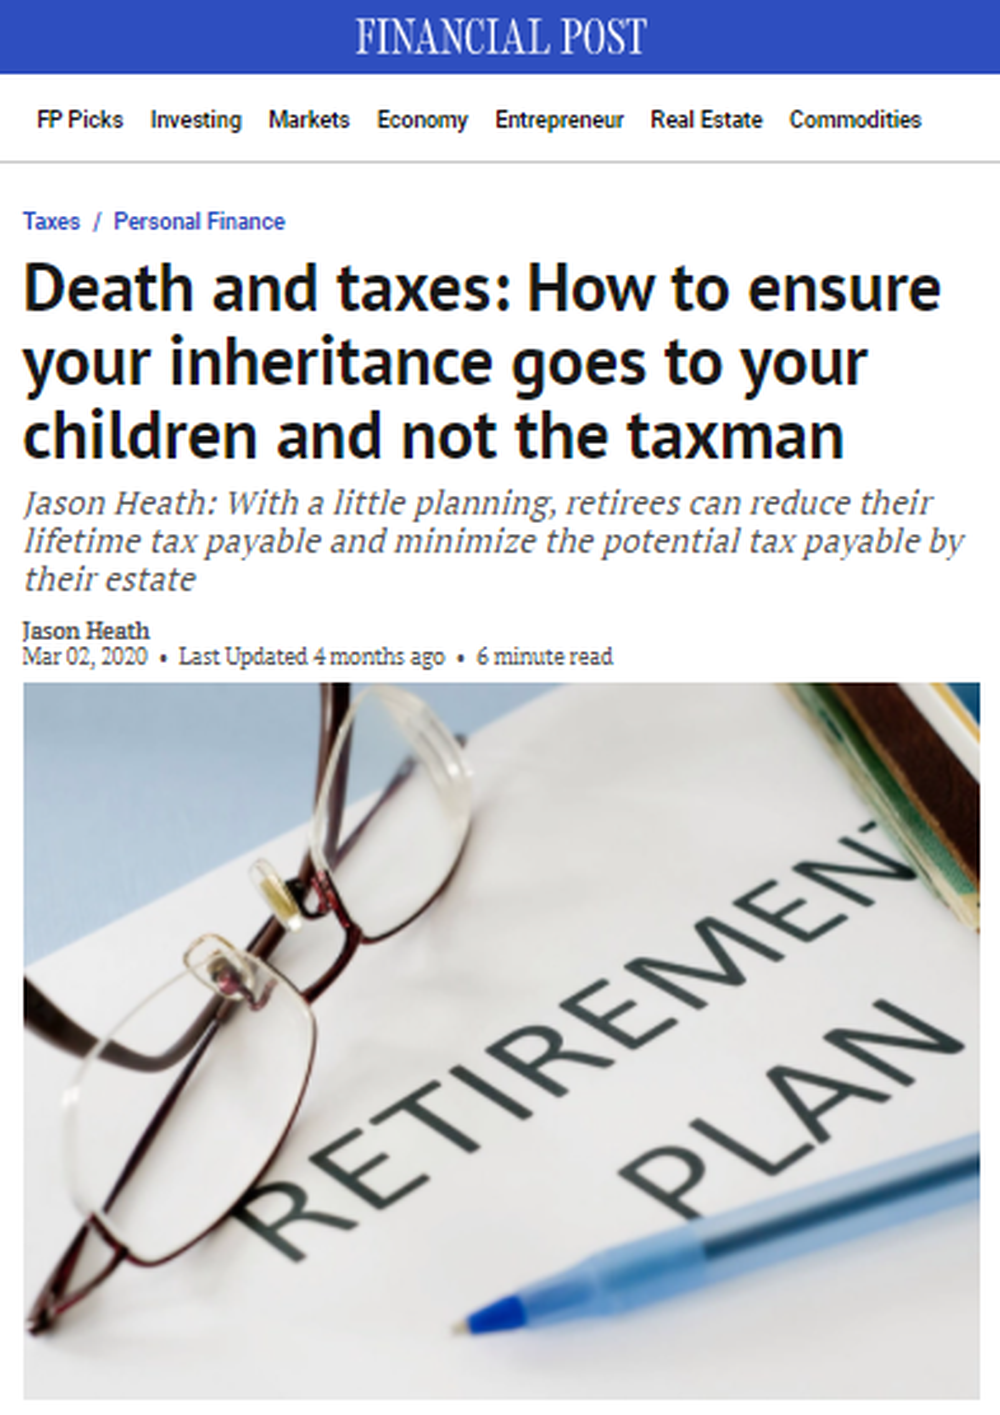 Death-and-taxes-How-to-ensure-your-inheritance-goes-to-your-children-and-not-the-taxman-Financial-Post.png